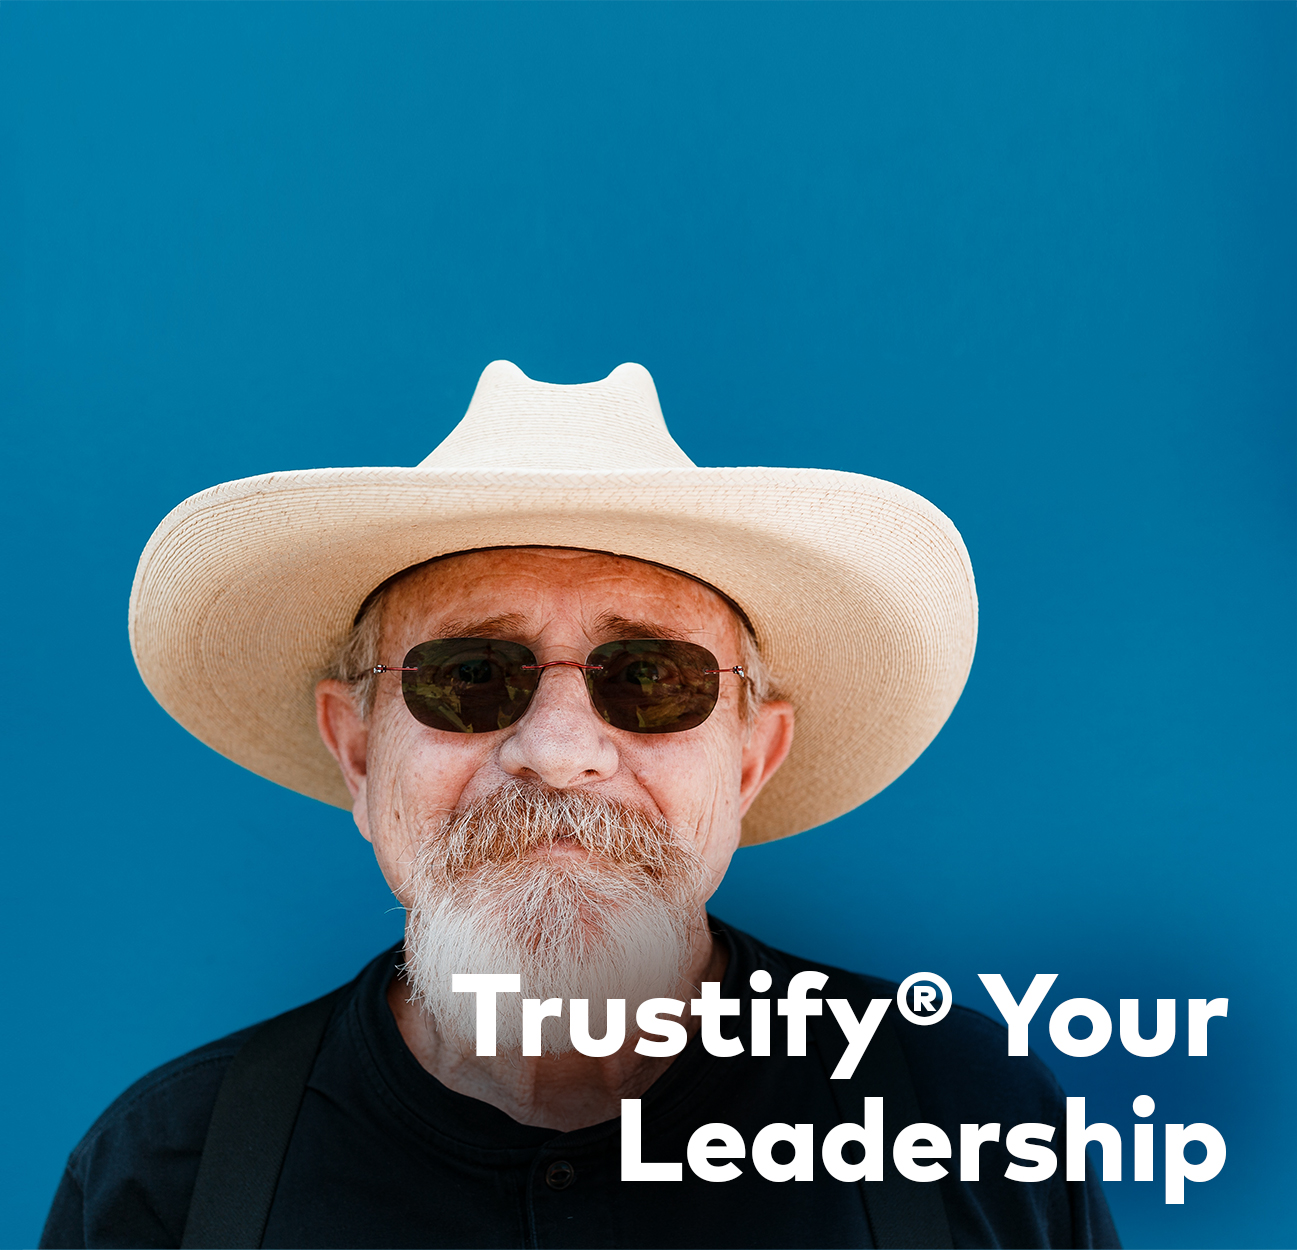 8_Mext_Consulting_Firm_Melbourne_Trust_Trustify_Your_Leadership.jpg